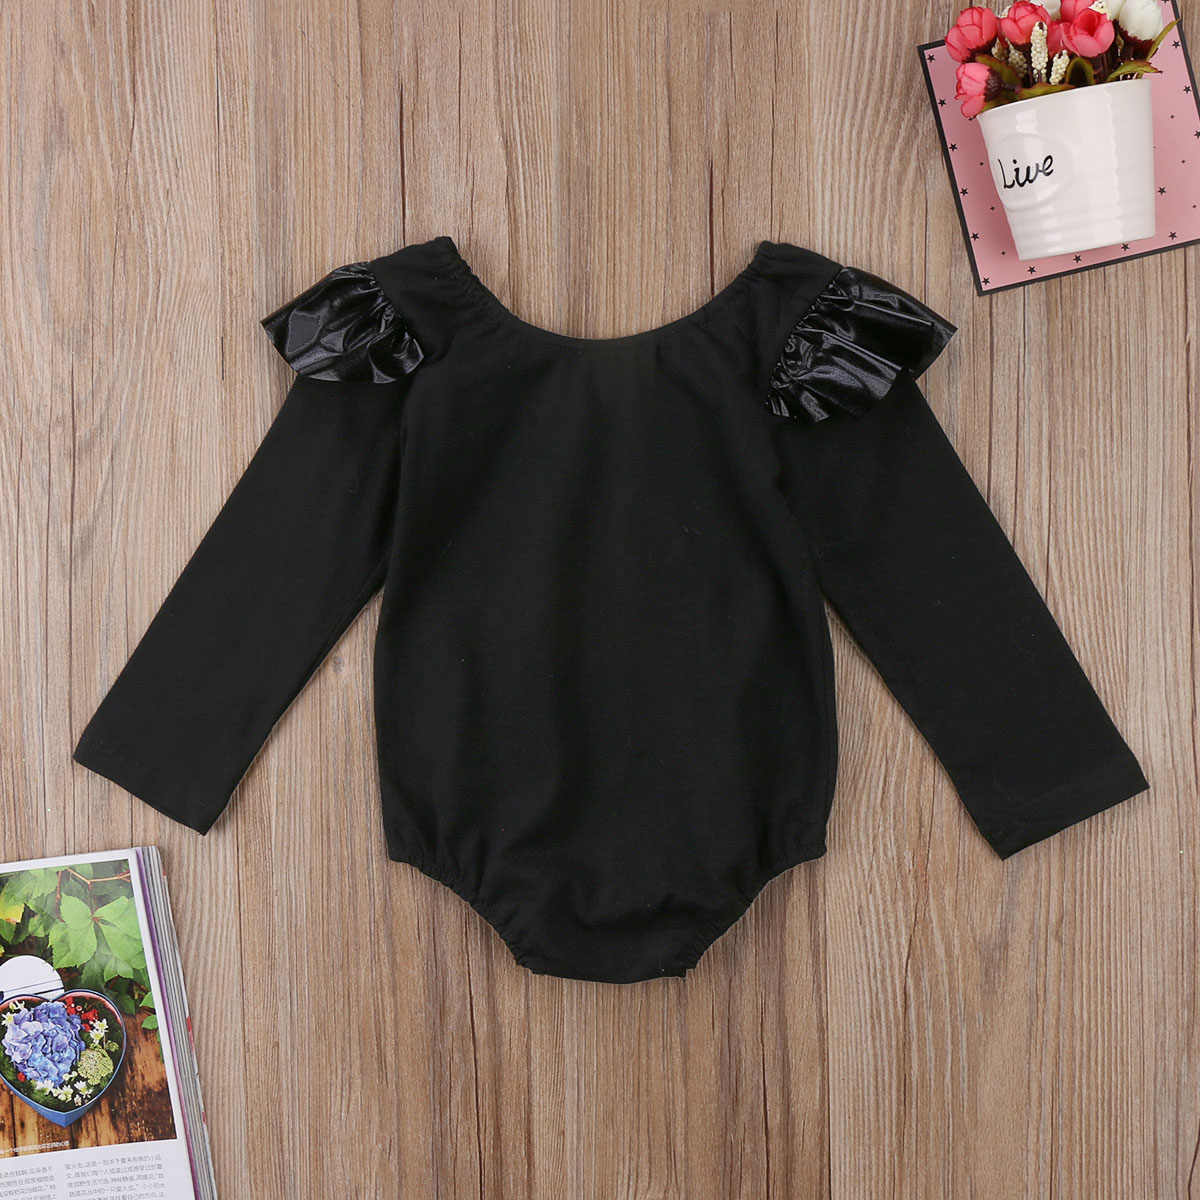 12572c63586 ... One Piece Black Cute Newborn Infant Baby Girl Boy Ruffle Long Sleeve  Letter Romper Jumpsuit Outfits